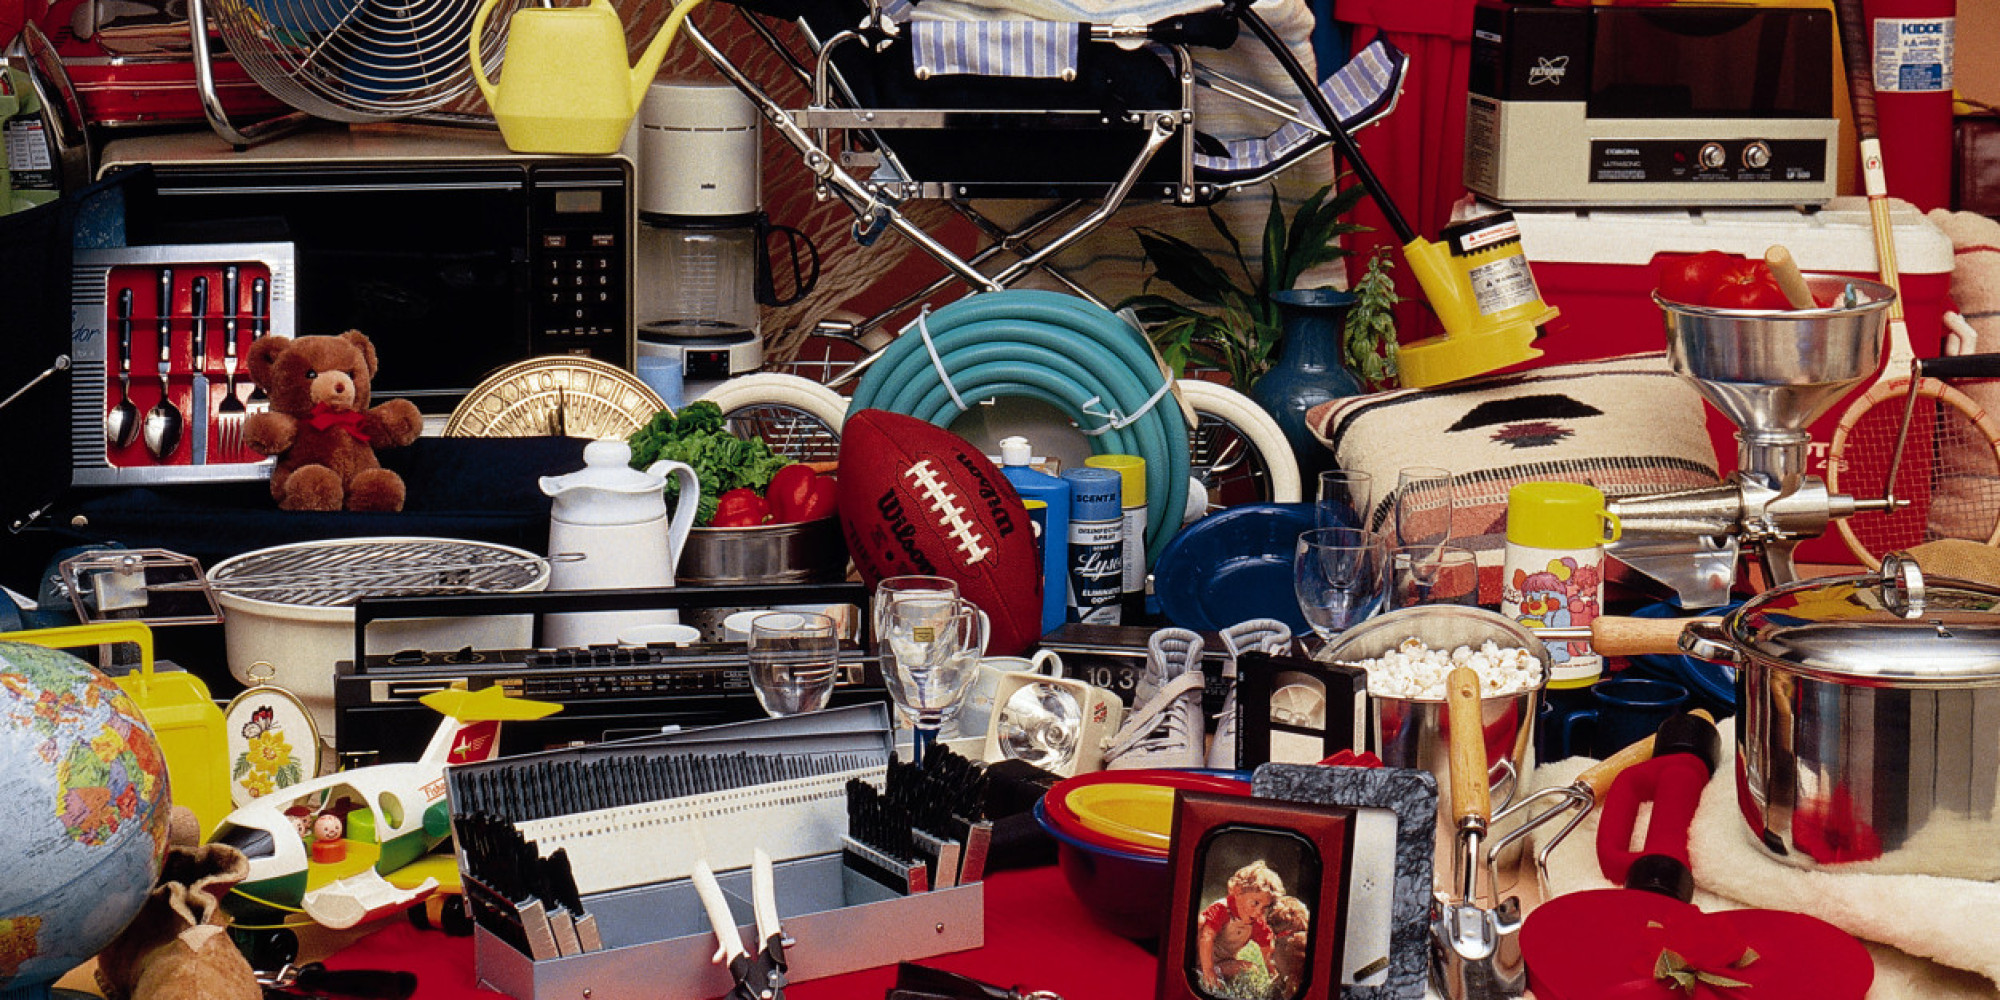 Spring cleaning 13 things people can 39 t get rid of for Comment assurer un garage seul